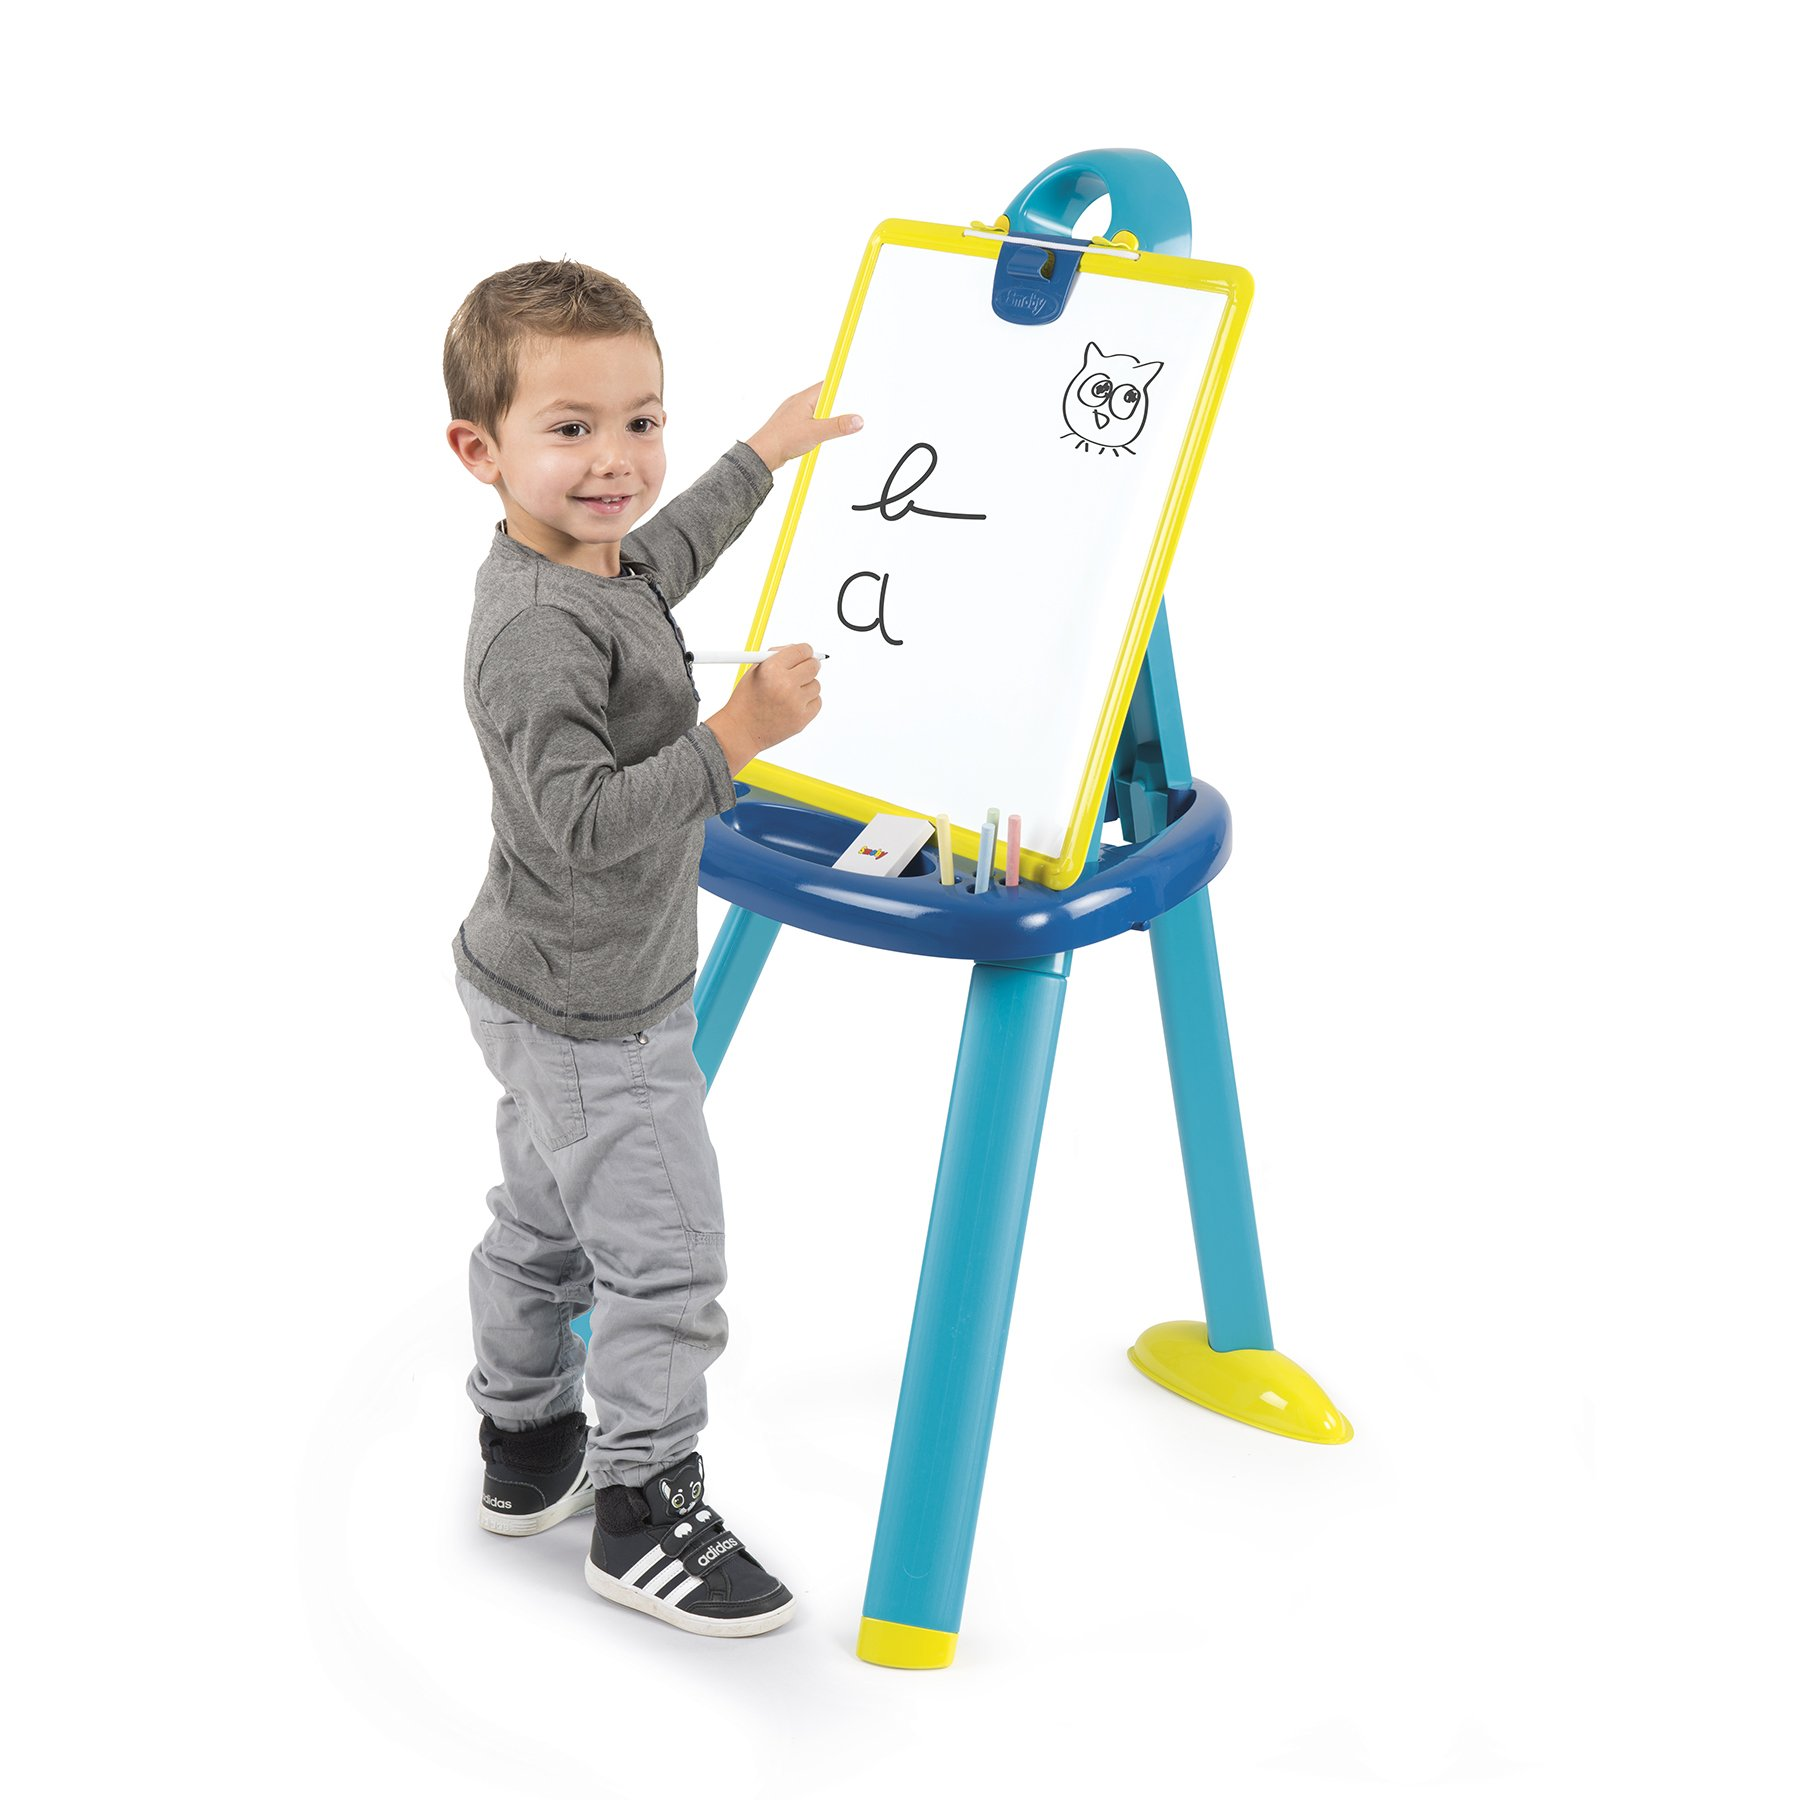 Smoby 410607 Plastic Board Easel, Blue by Smoby